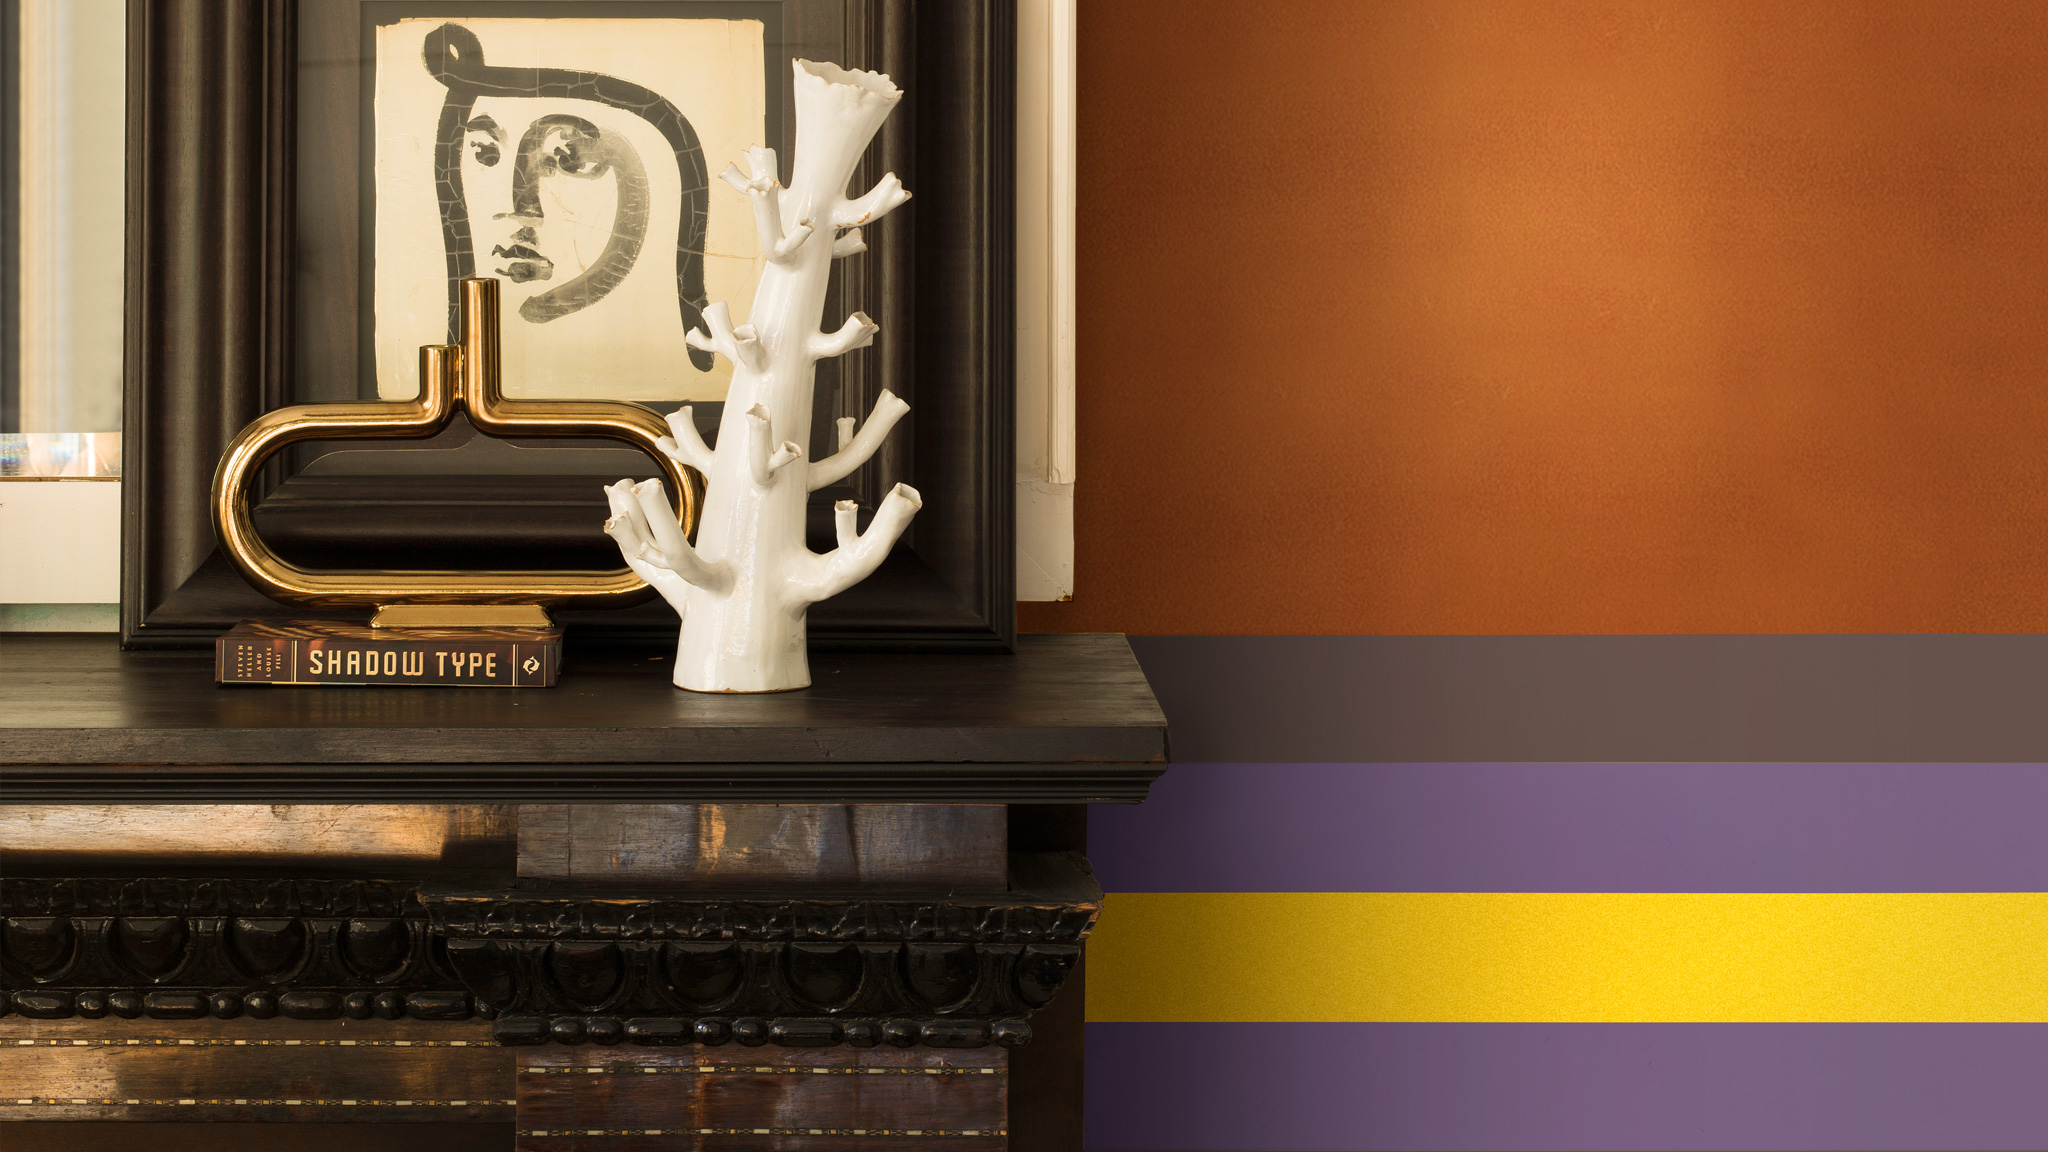 Dulux Ambiance - Classic Luxury Section 4